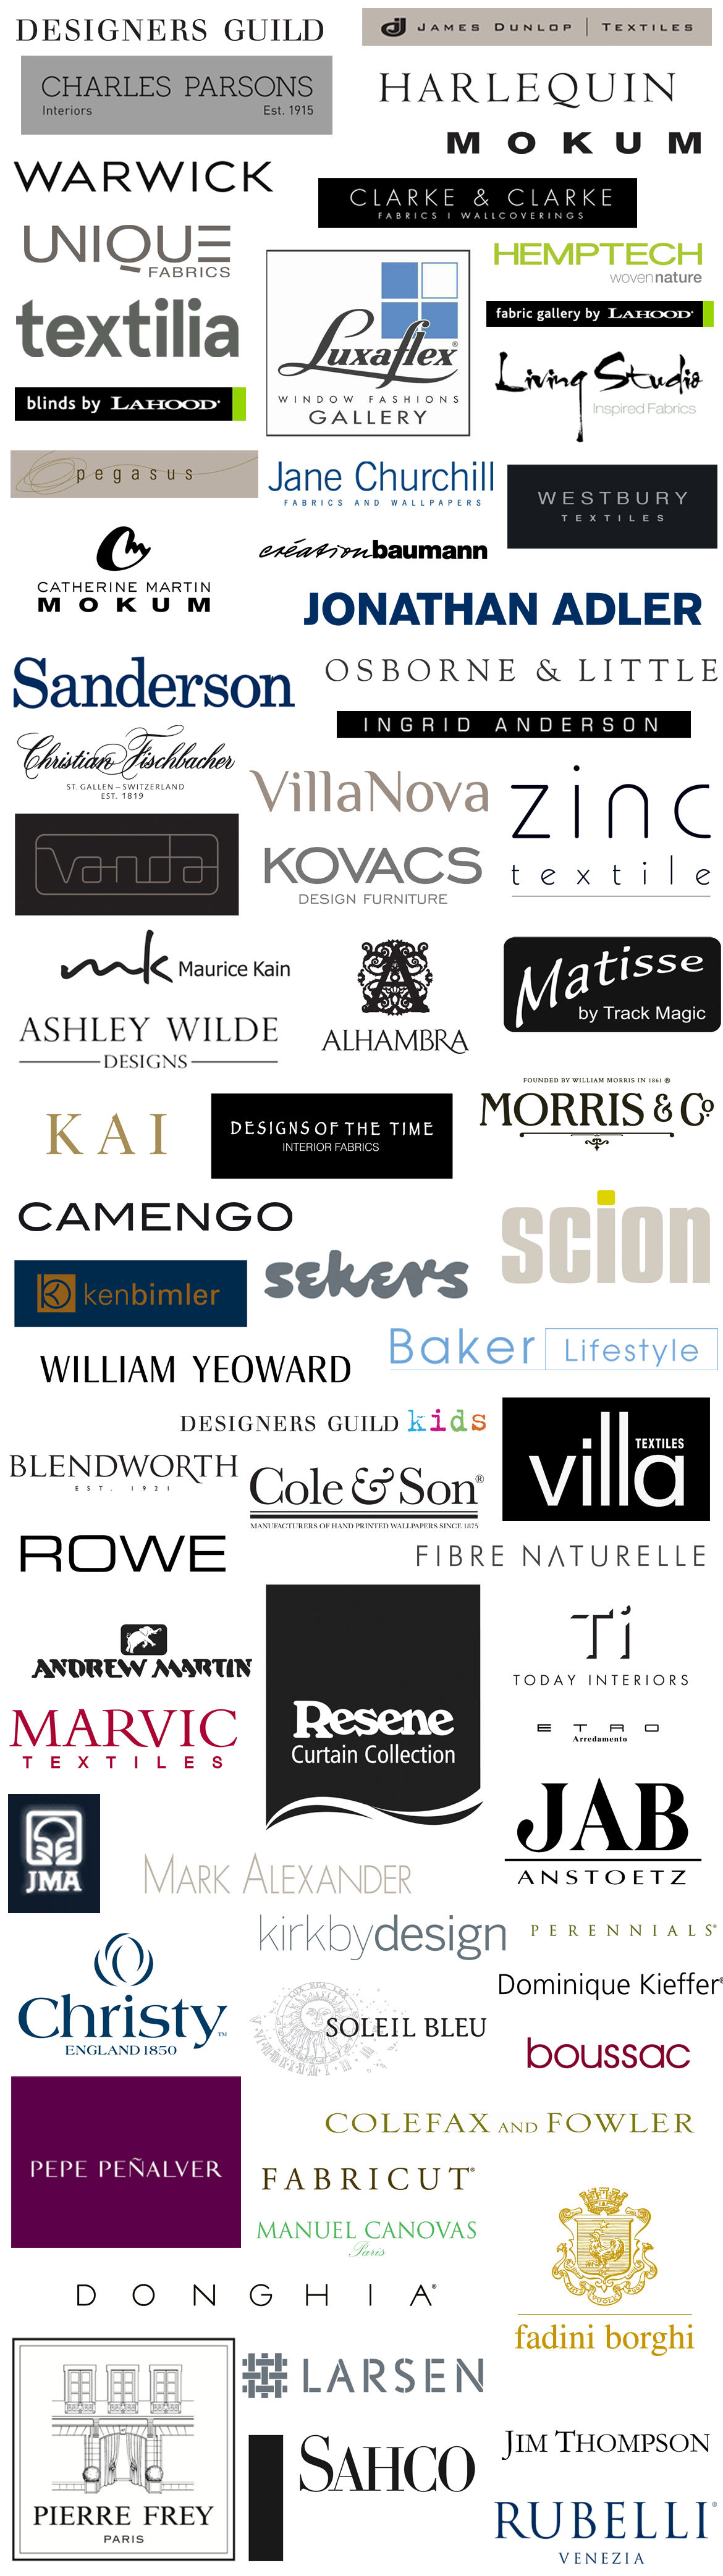 Our Brands 2015